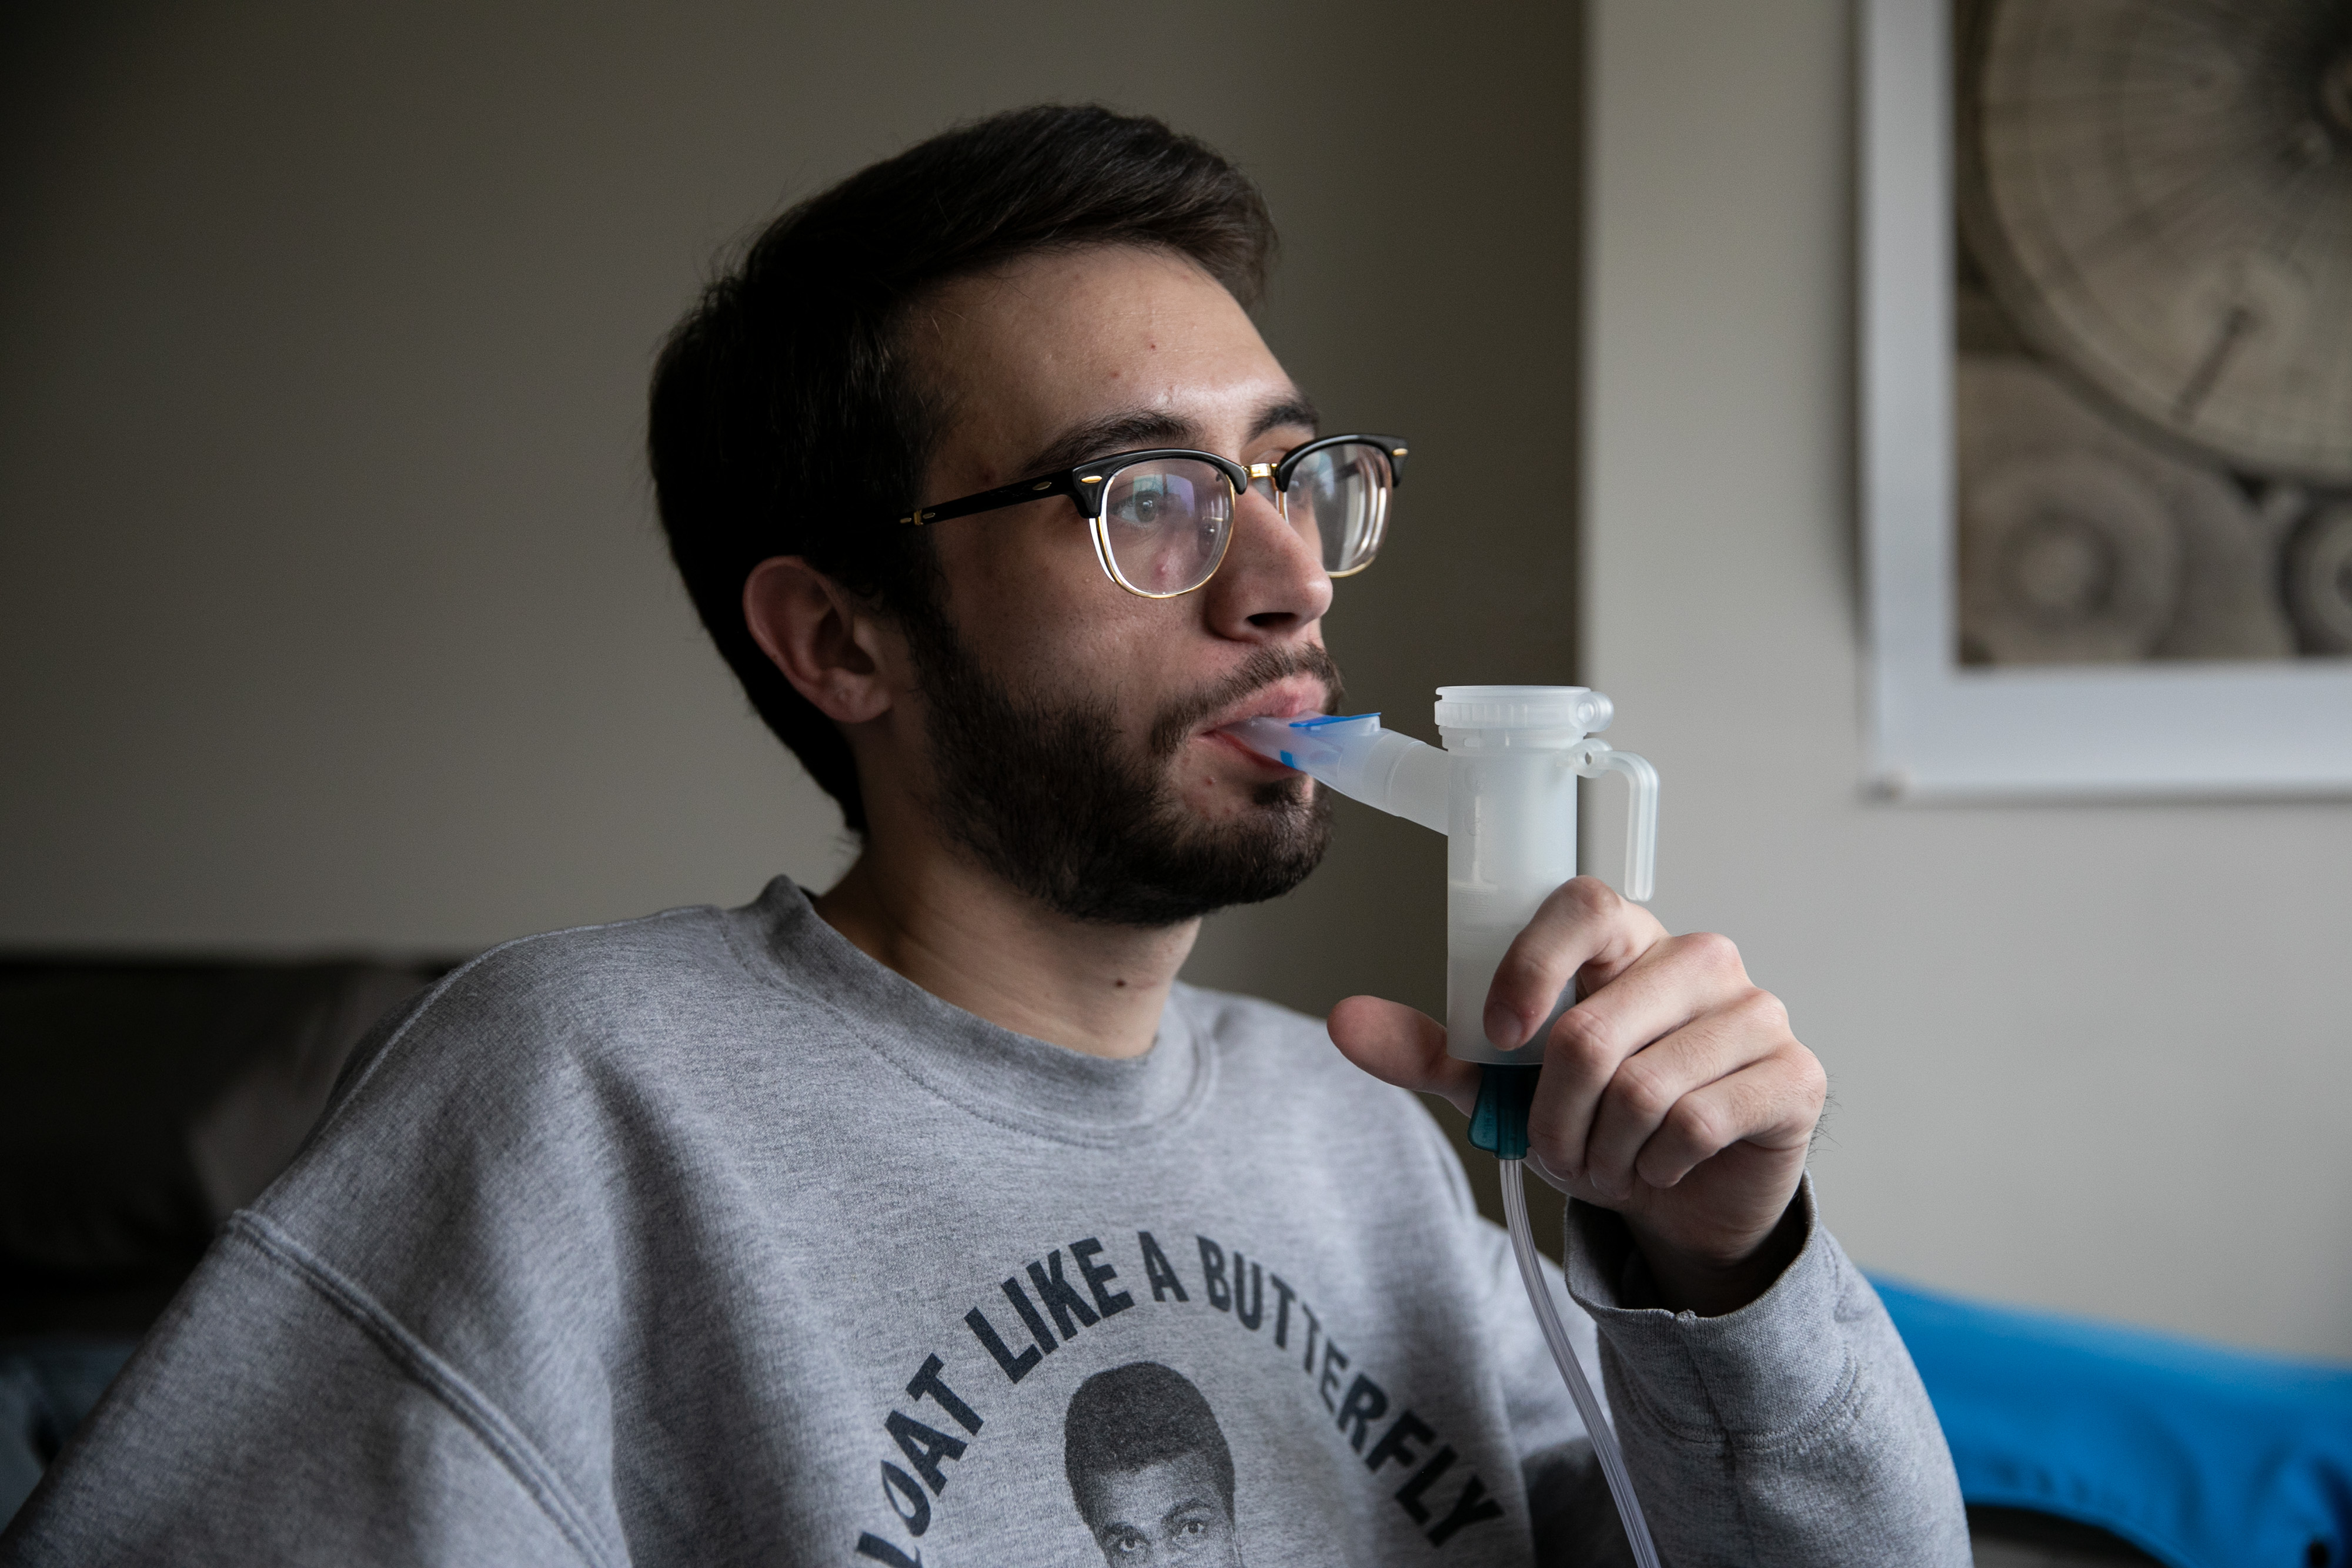 As cystic fibrosis drugs deliver new hope, progress isn't